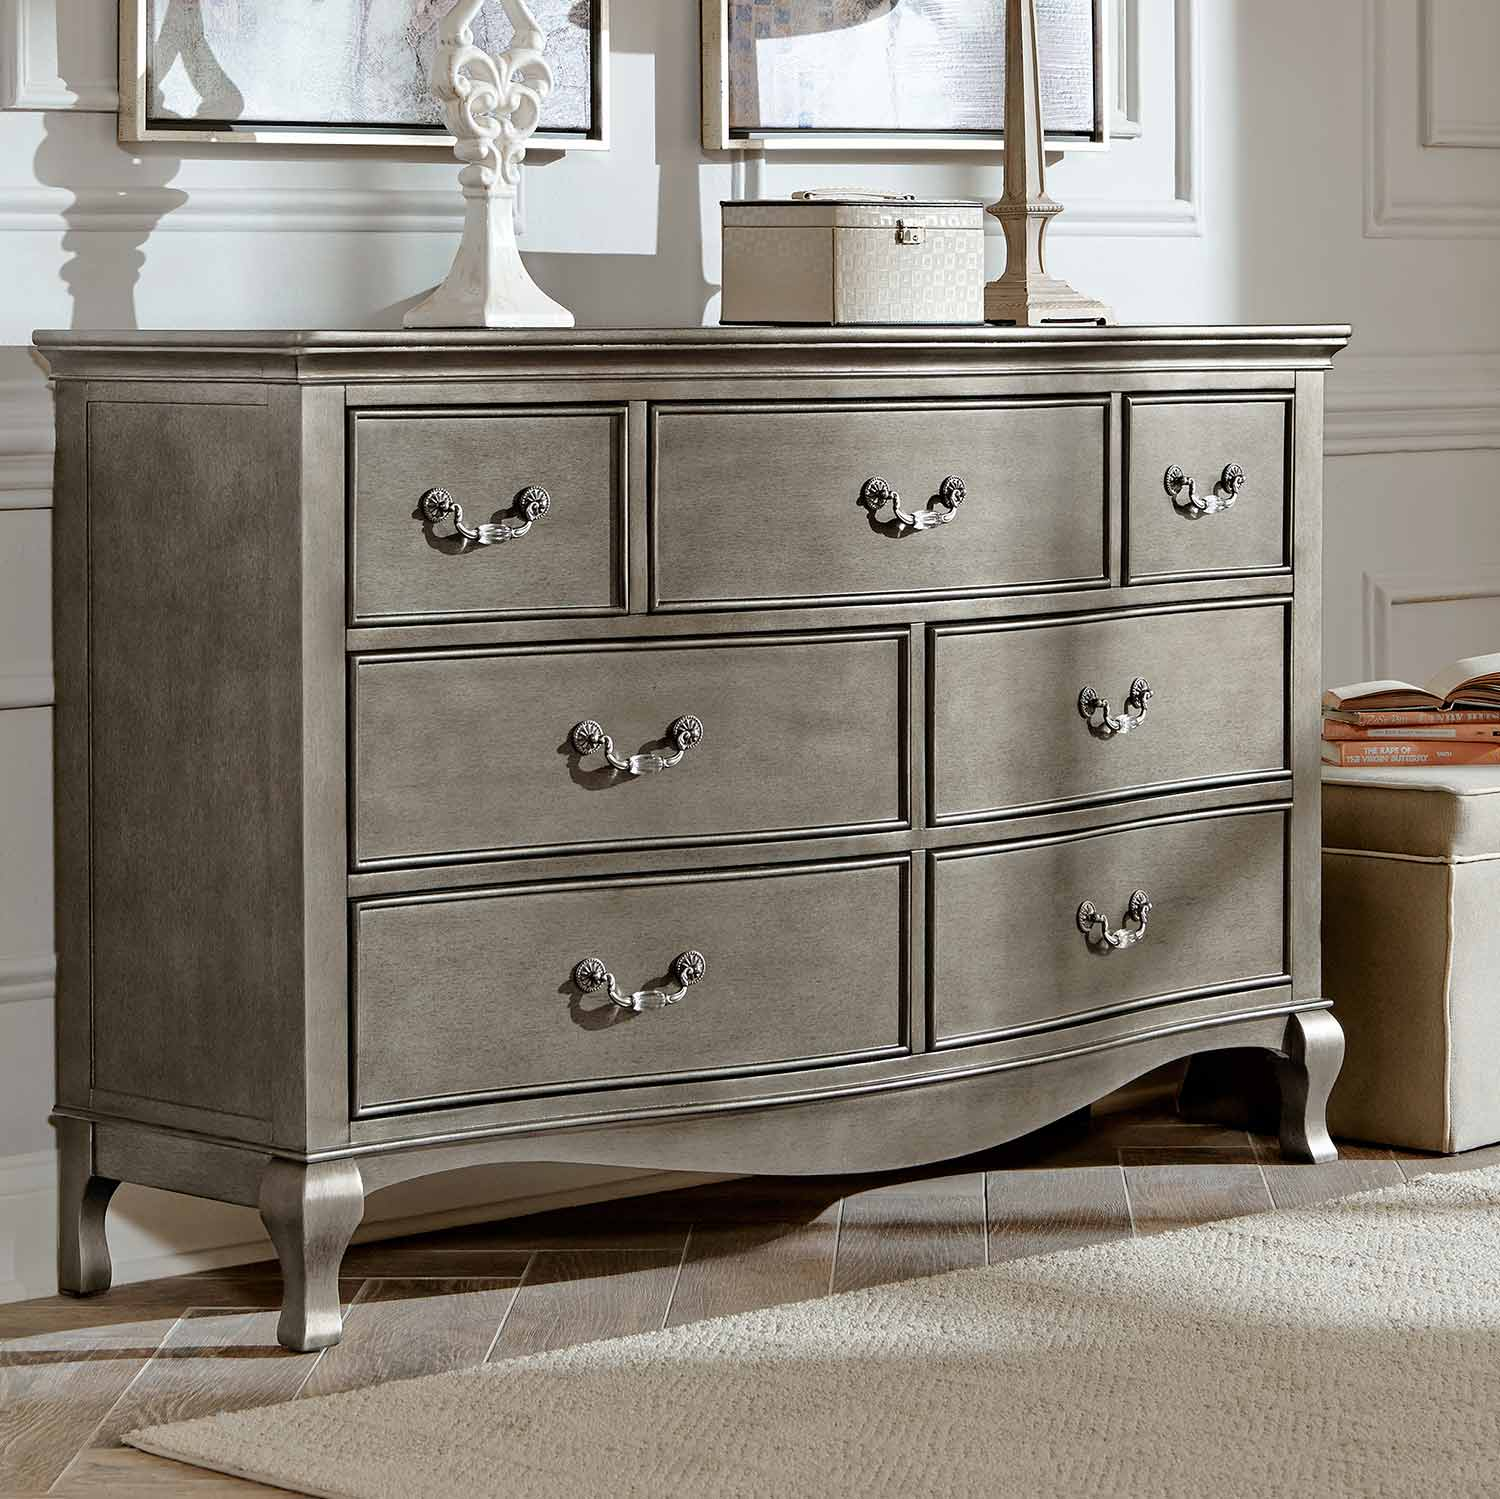 NE Kids Kensington 7 Drawer Double Dresser - Antique Silver